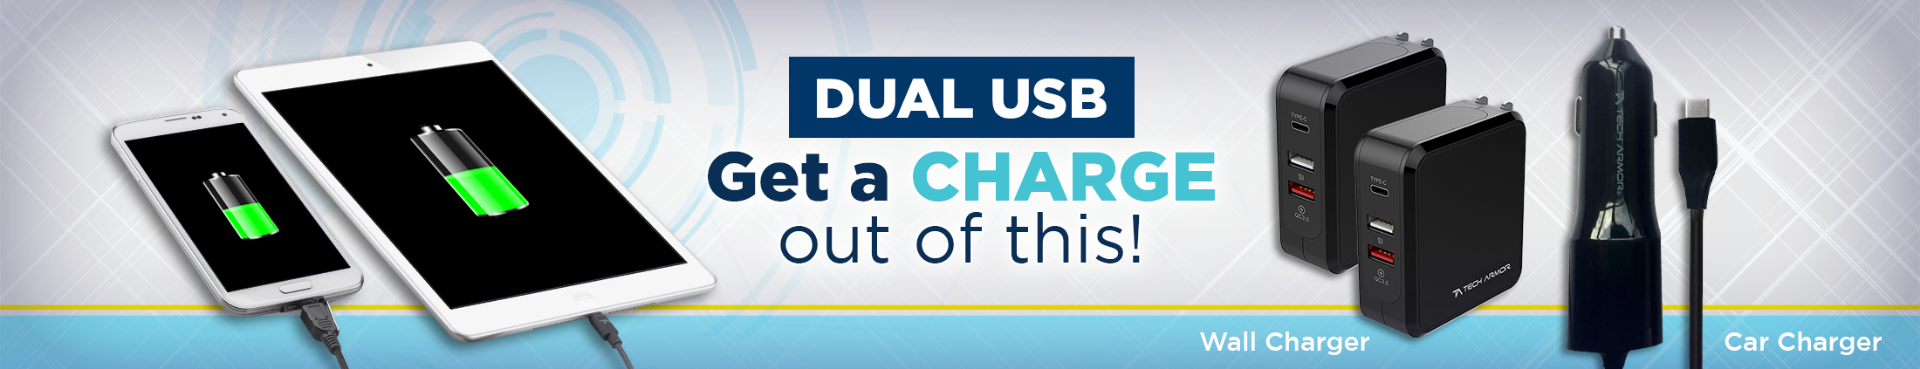 Dual USB Chargers